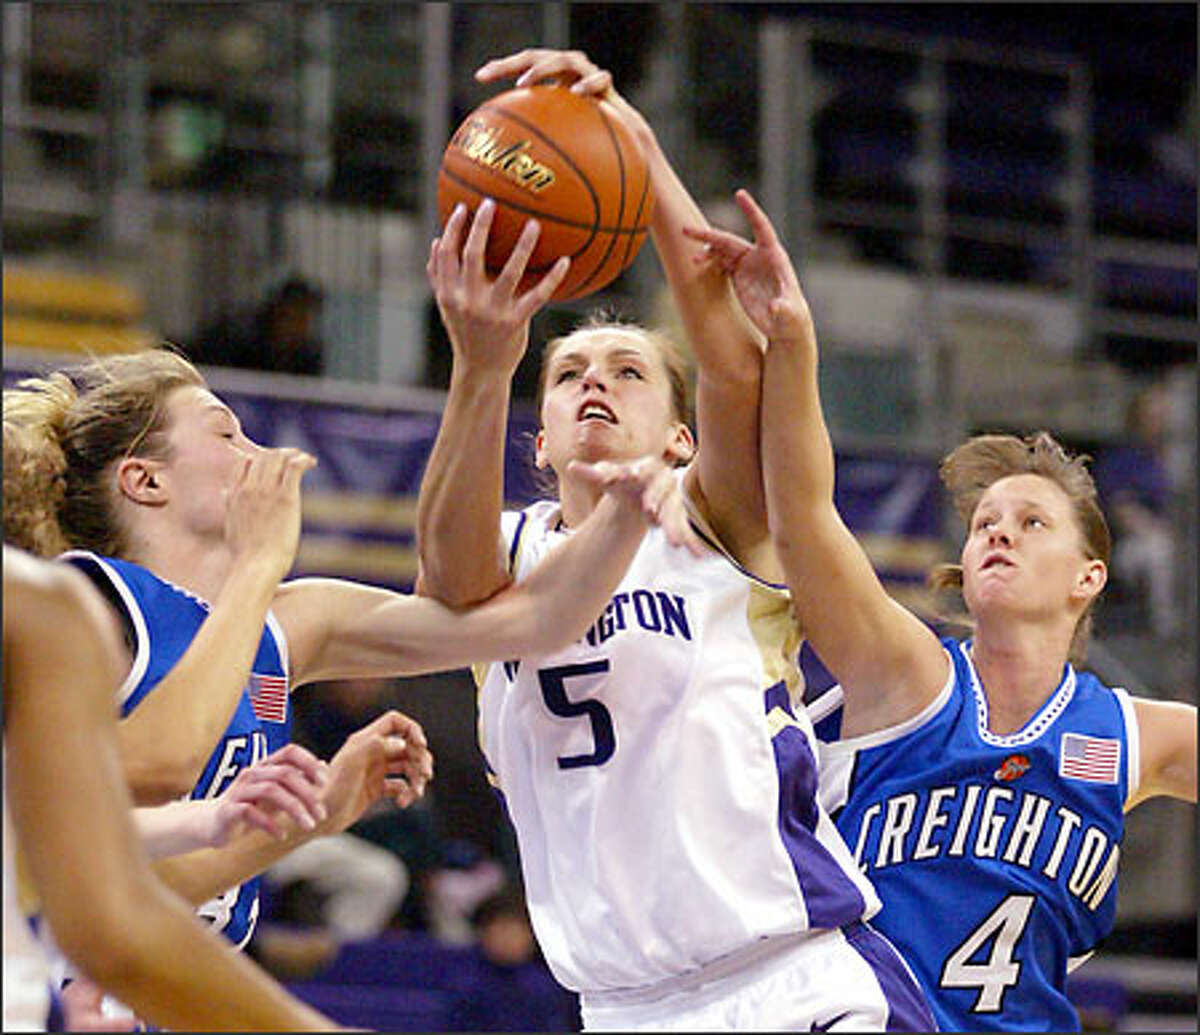 UW forward Andrea Lalum had 18 points in the first half but was limited to five points in the second half.